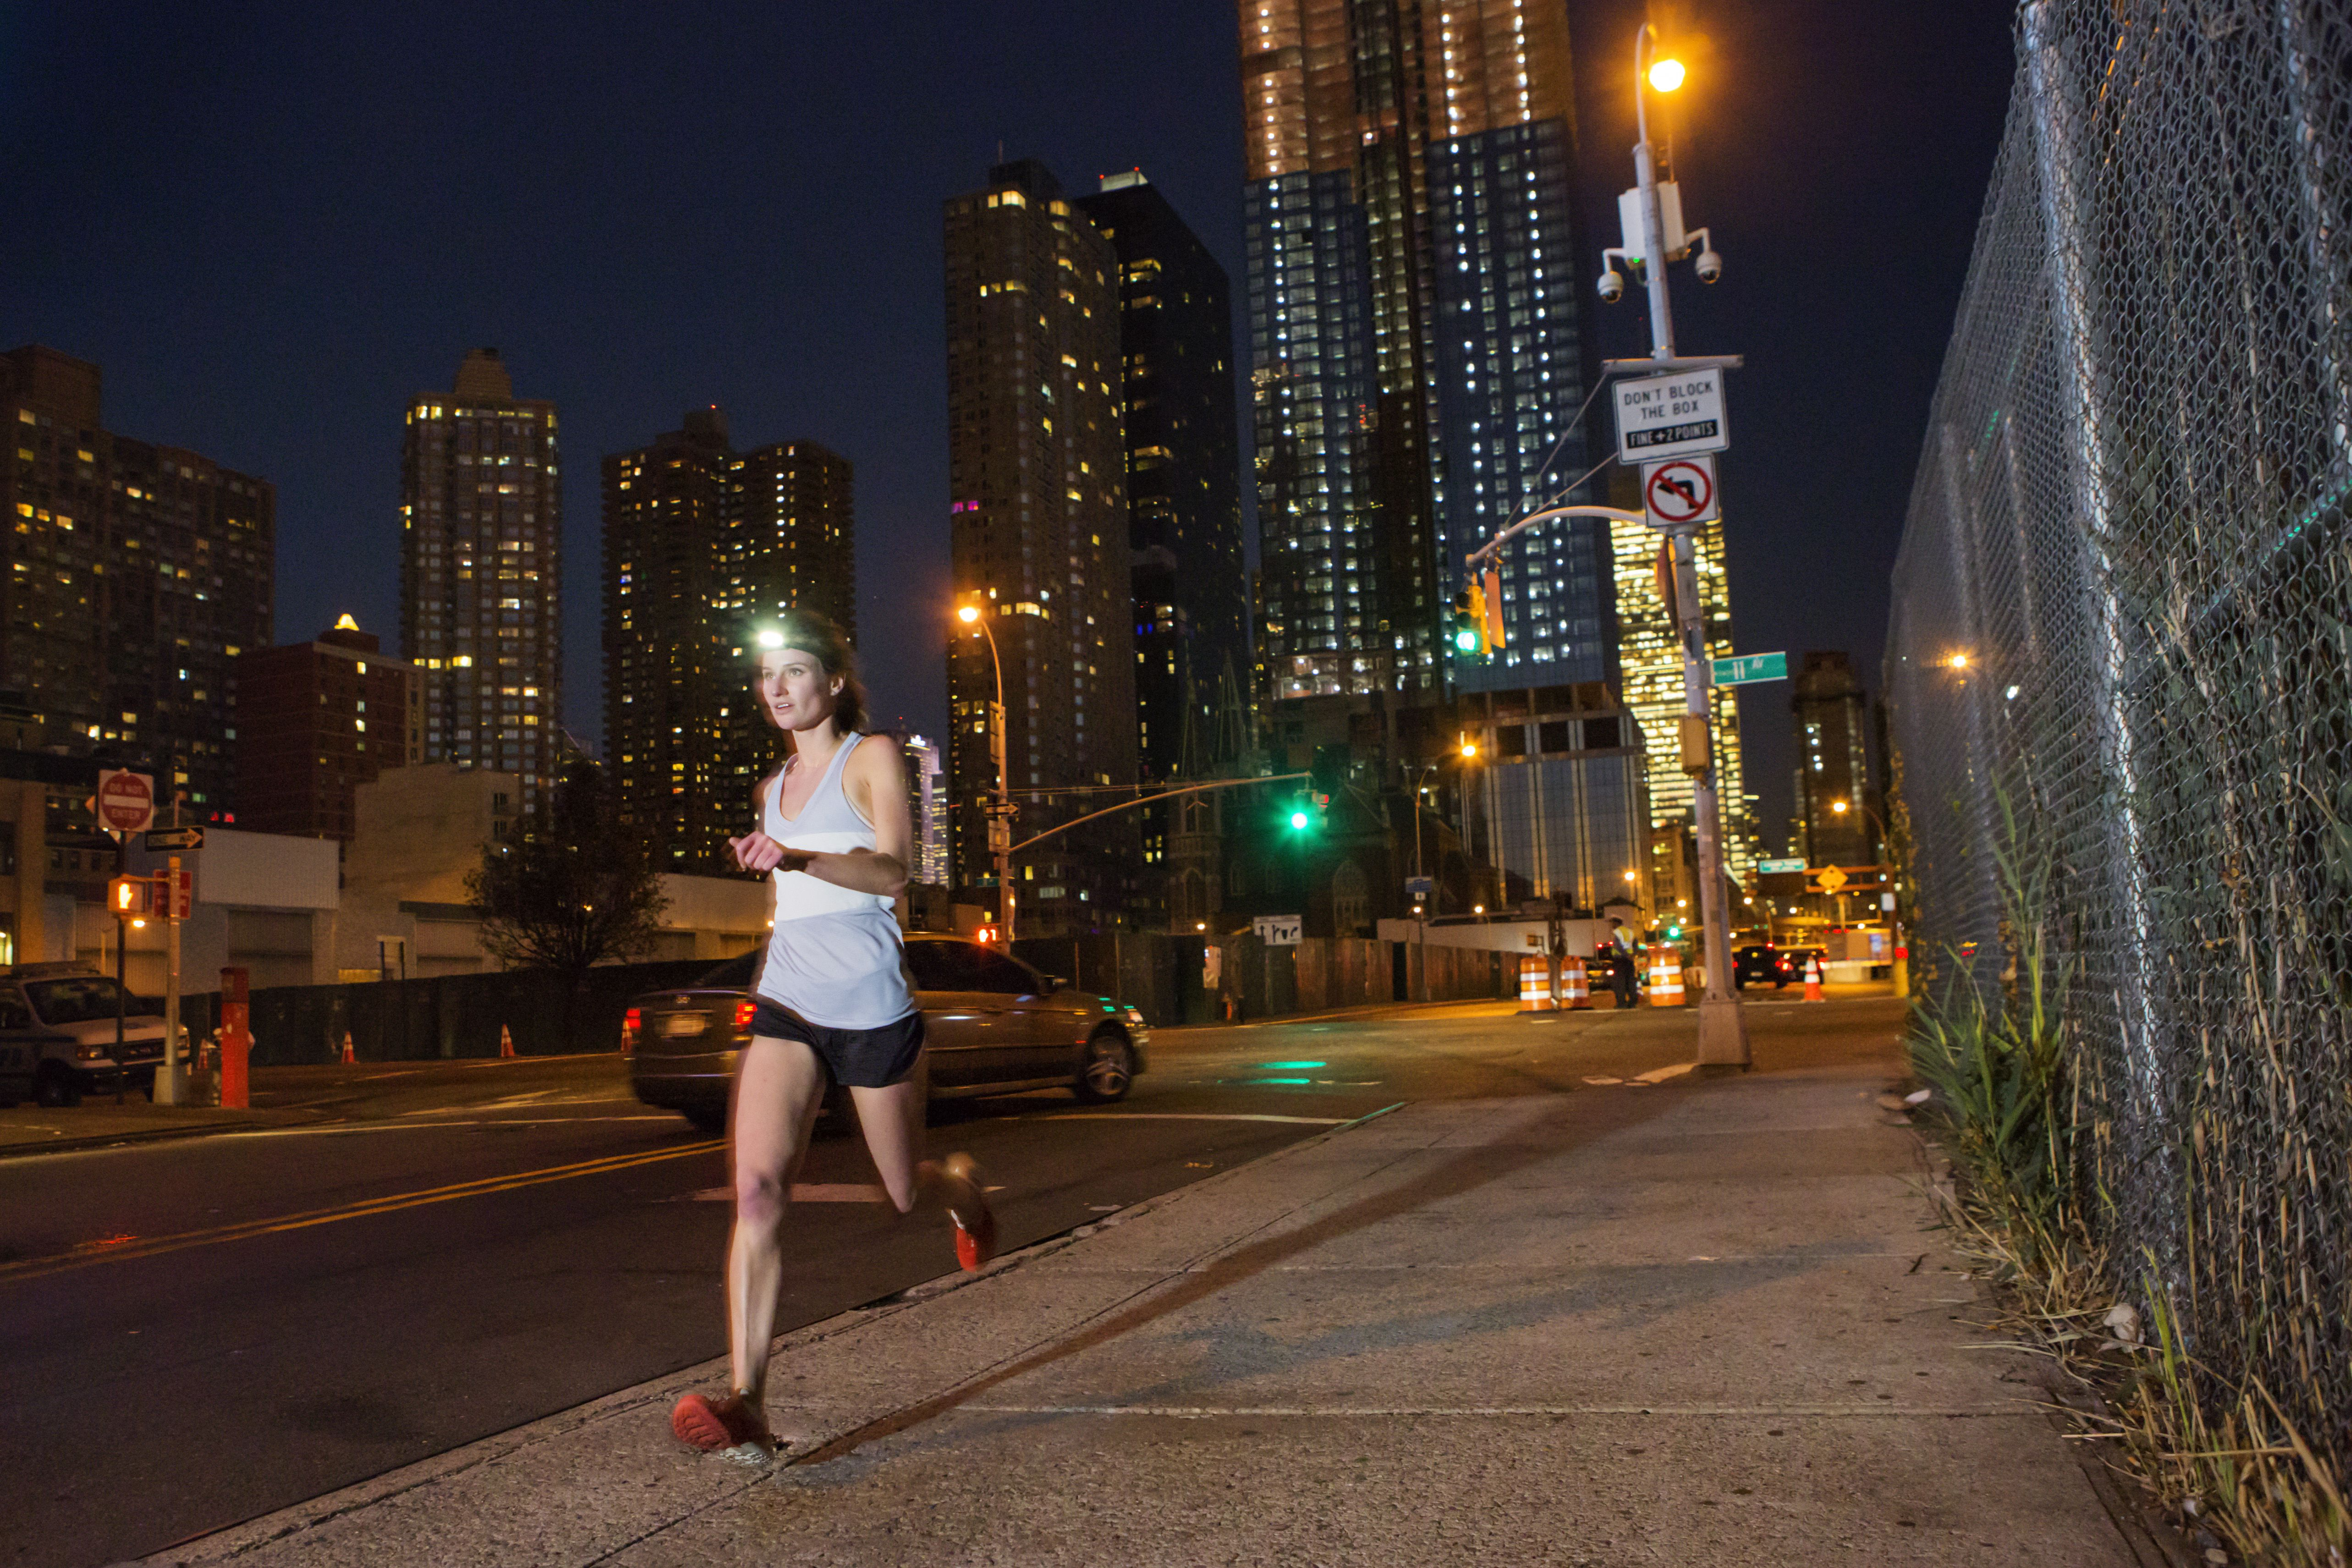 daabd60b3e3 Runner at night with city in background